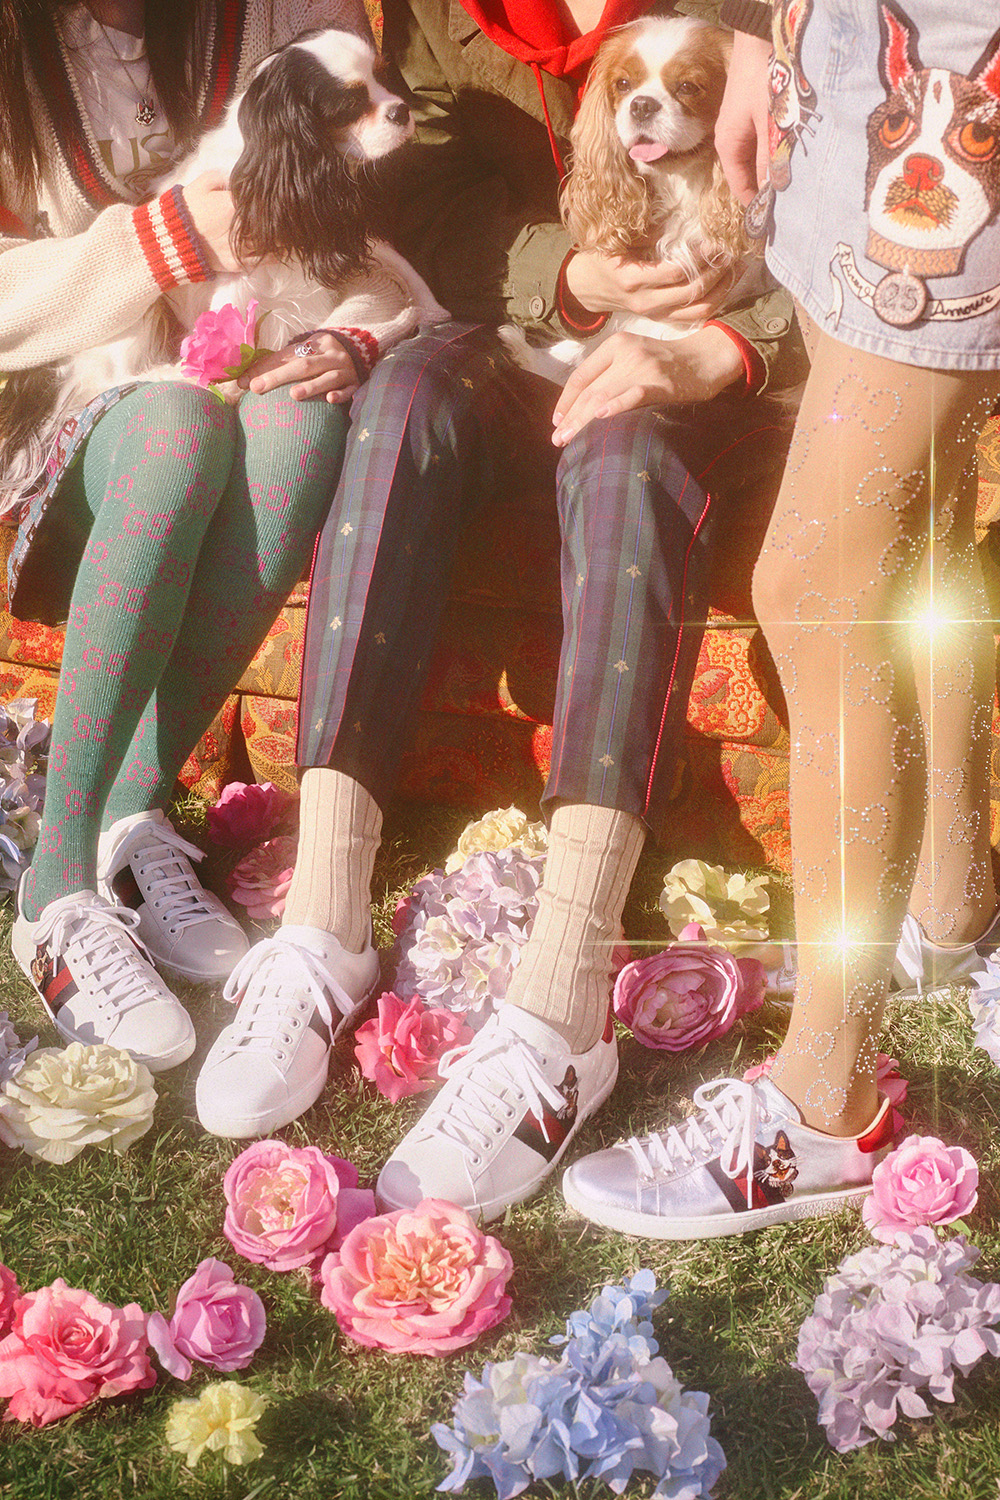 gucci-chinese-new-year-fashion-campaign-petra-collins-2.jpg